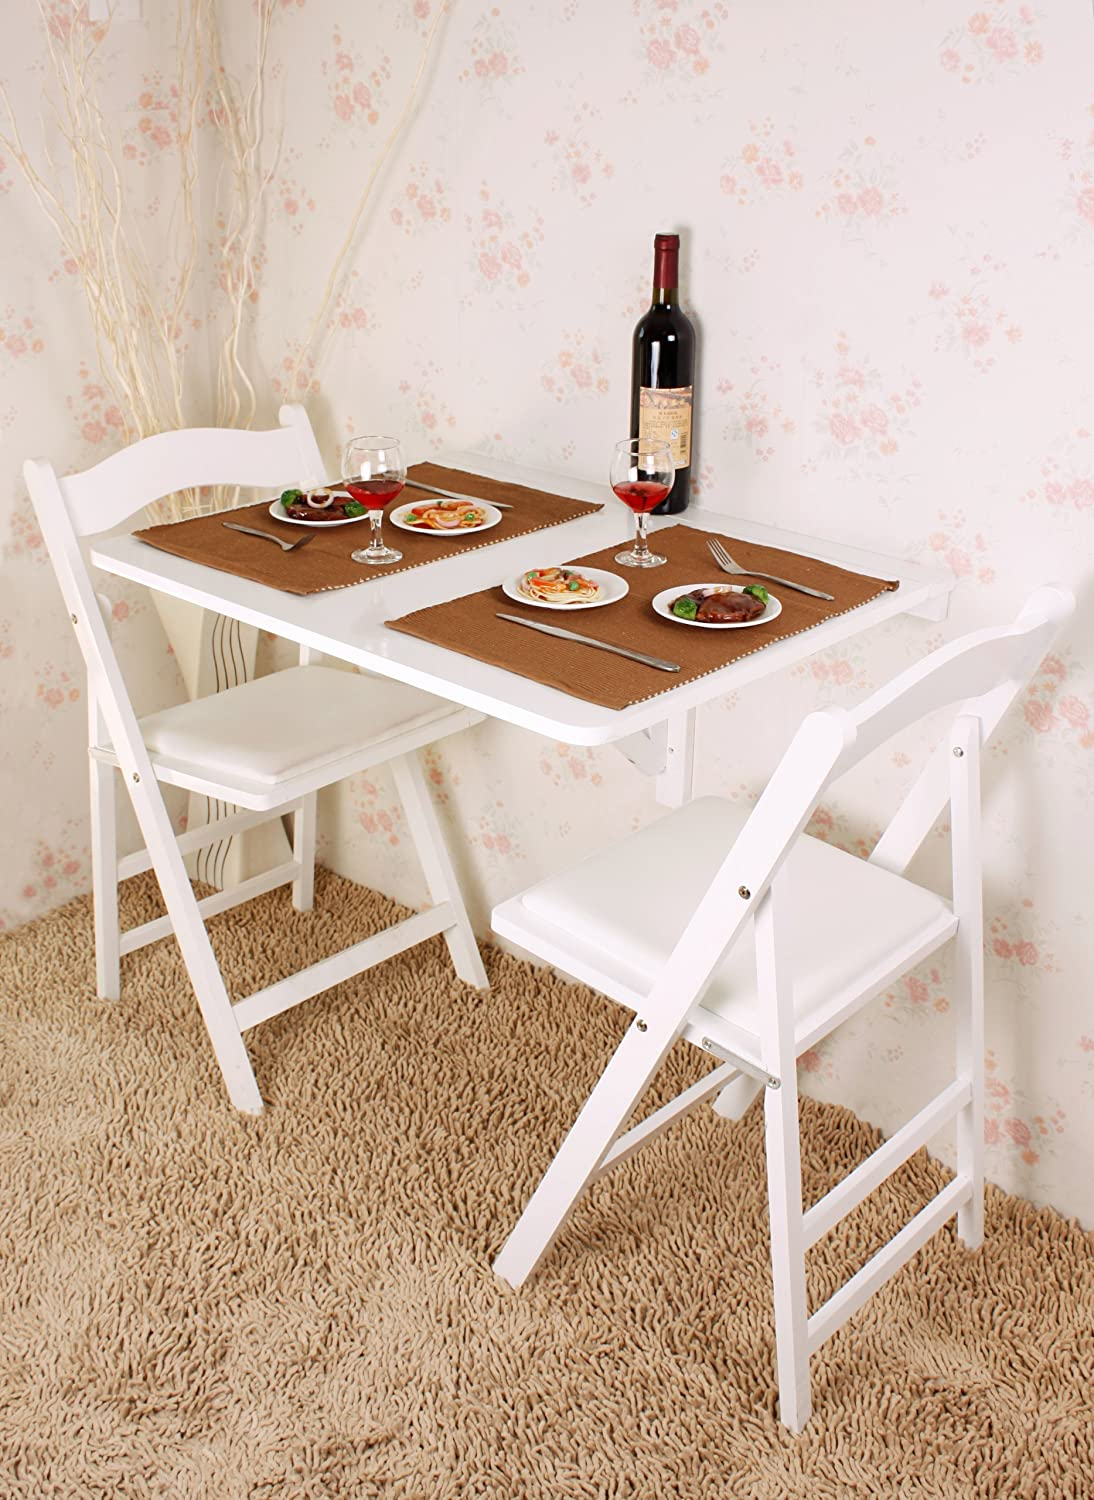 excellent sobuy fwtw table murale rabattables table de cuisine pliante table rabat pour enfant. Black Bedroom Furniture Sets. Home Design Ideas